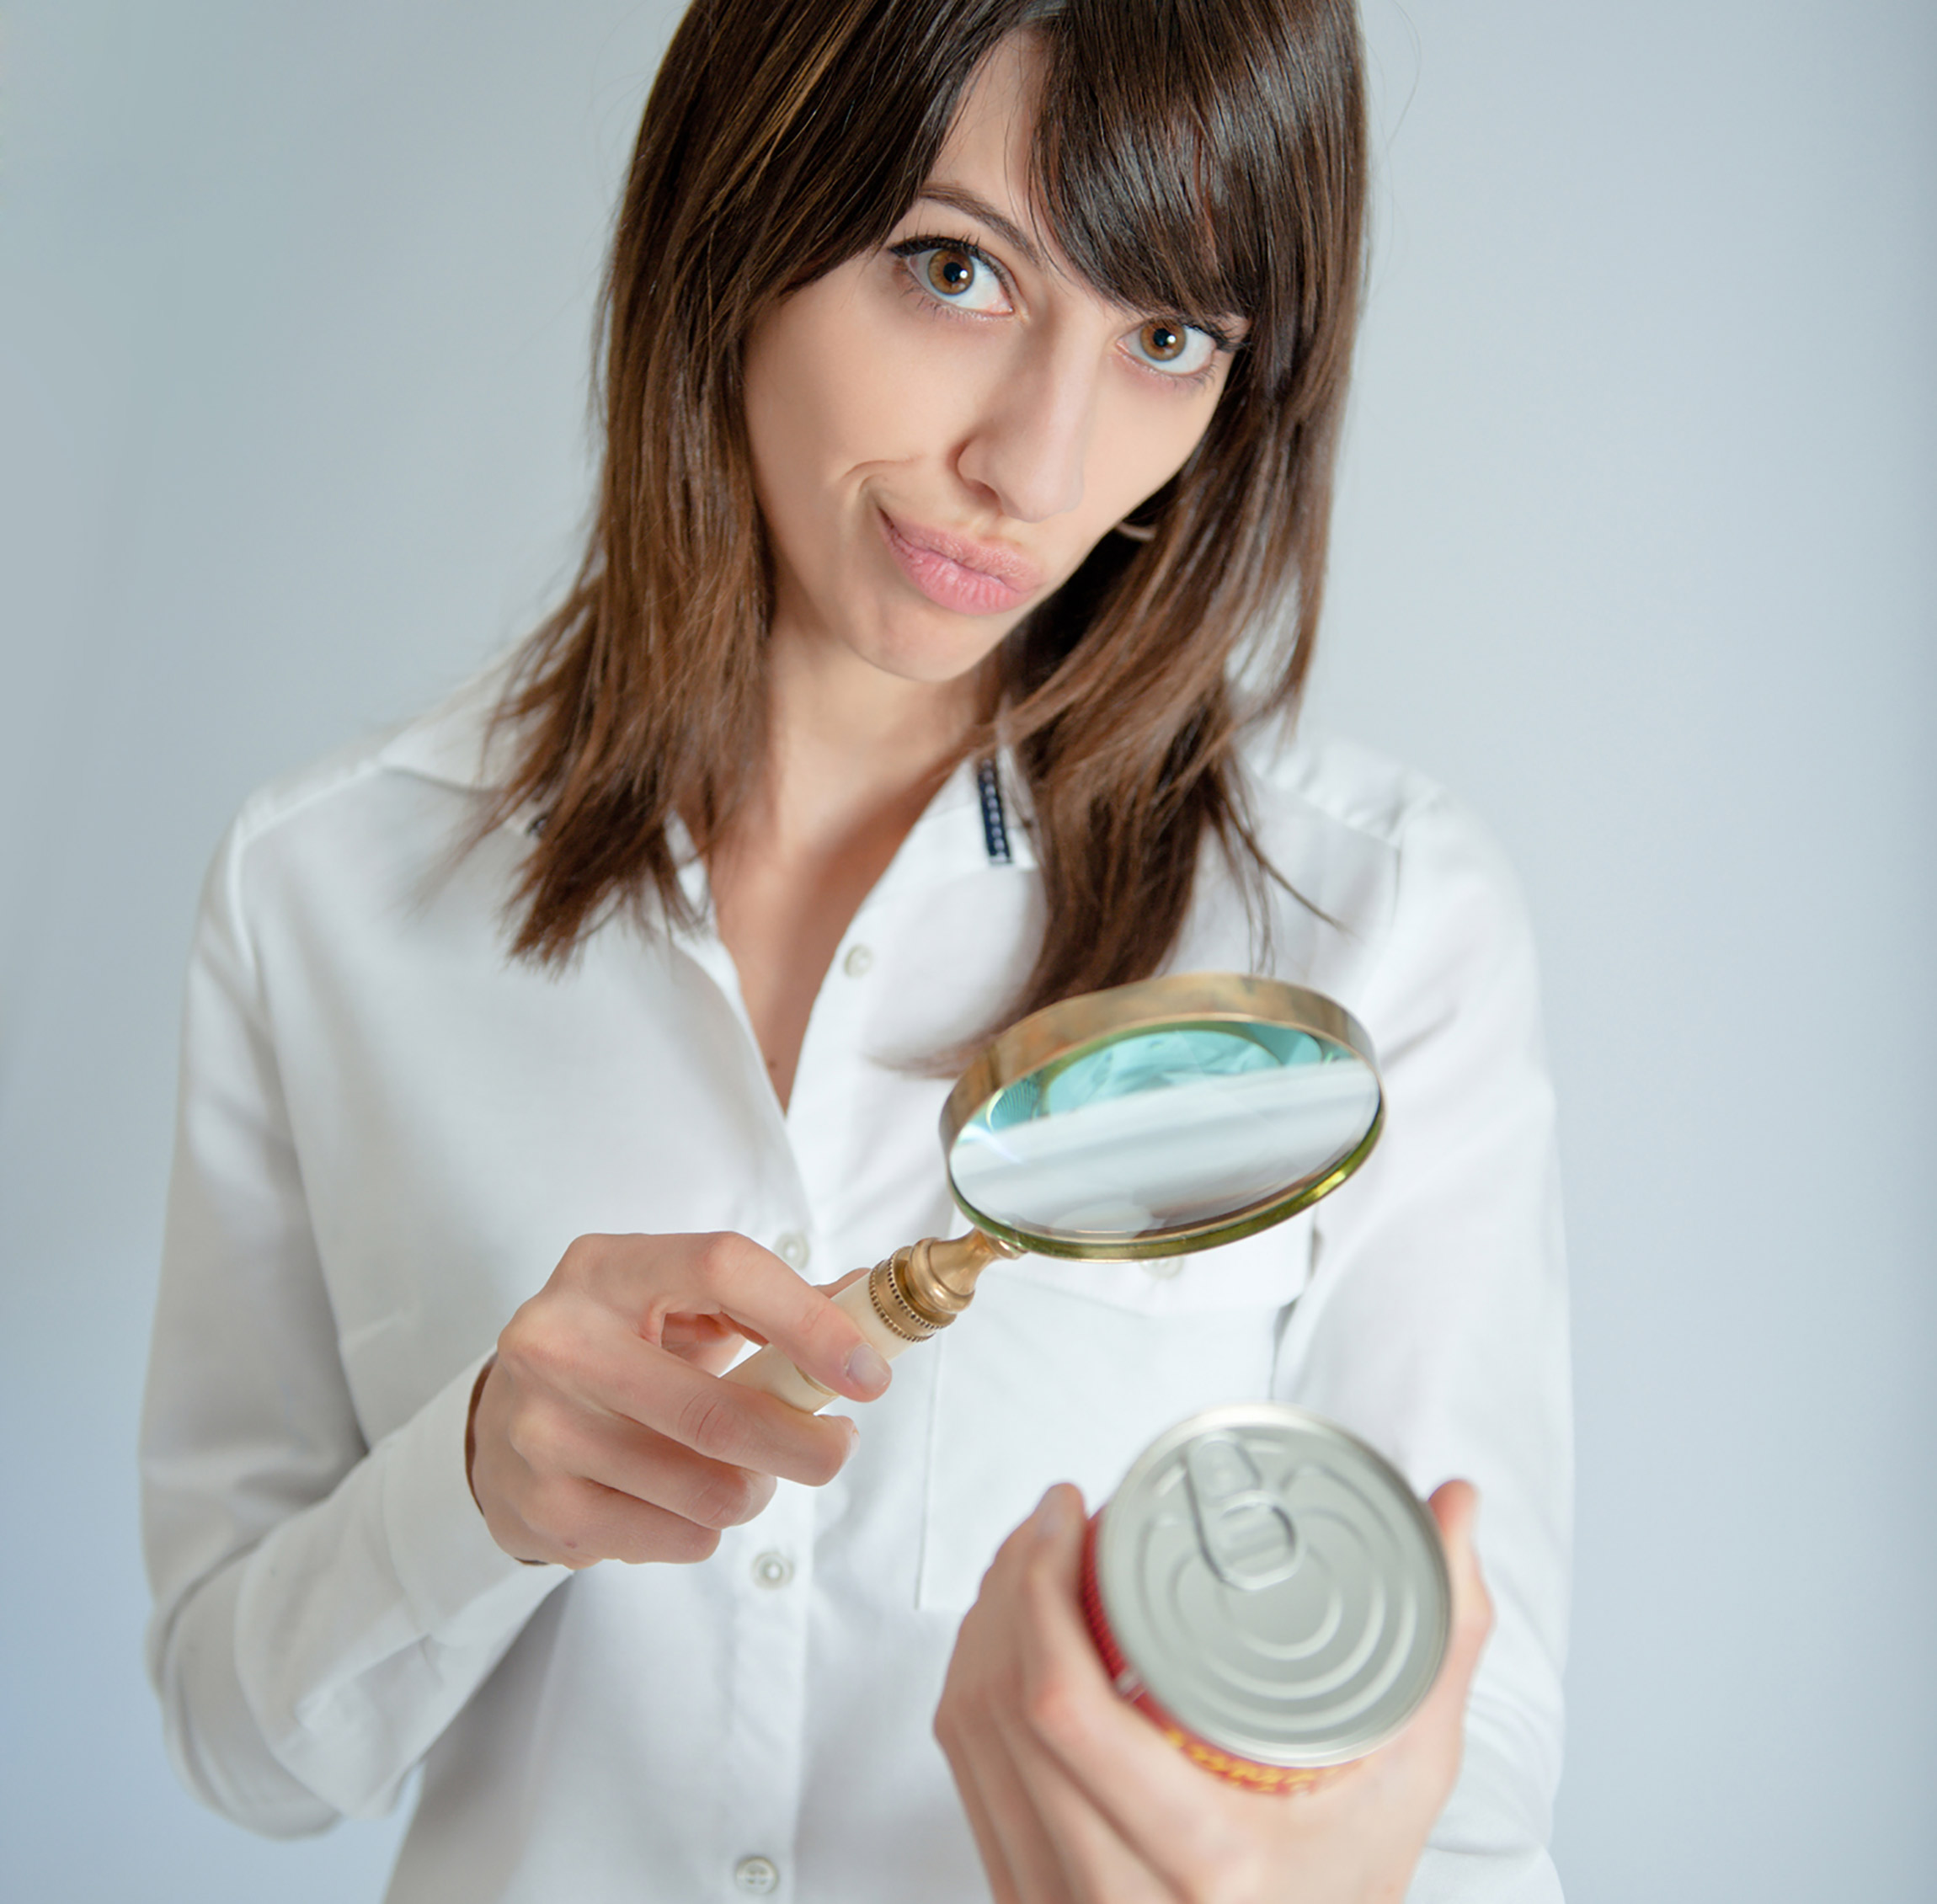 A woman inspecting a can's label with a magnifying glass